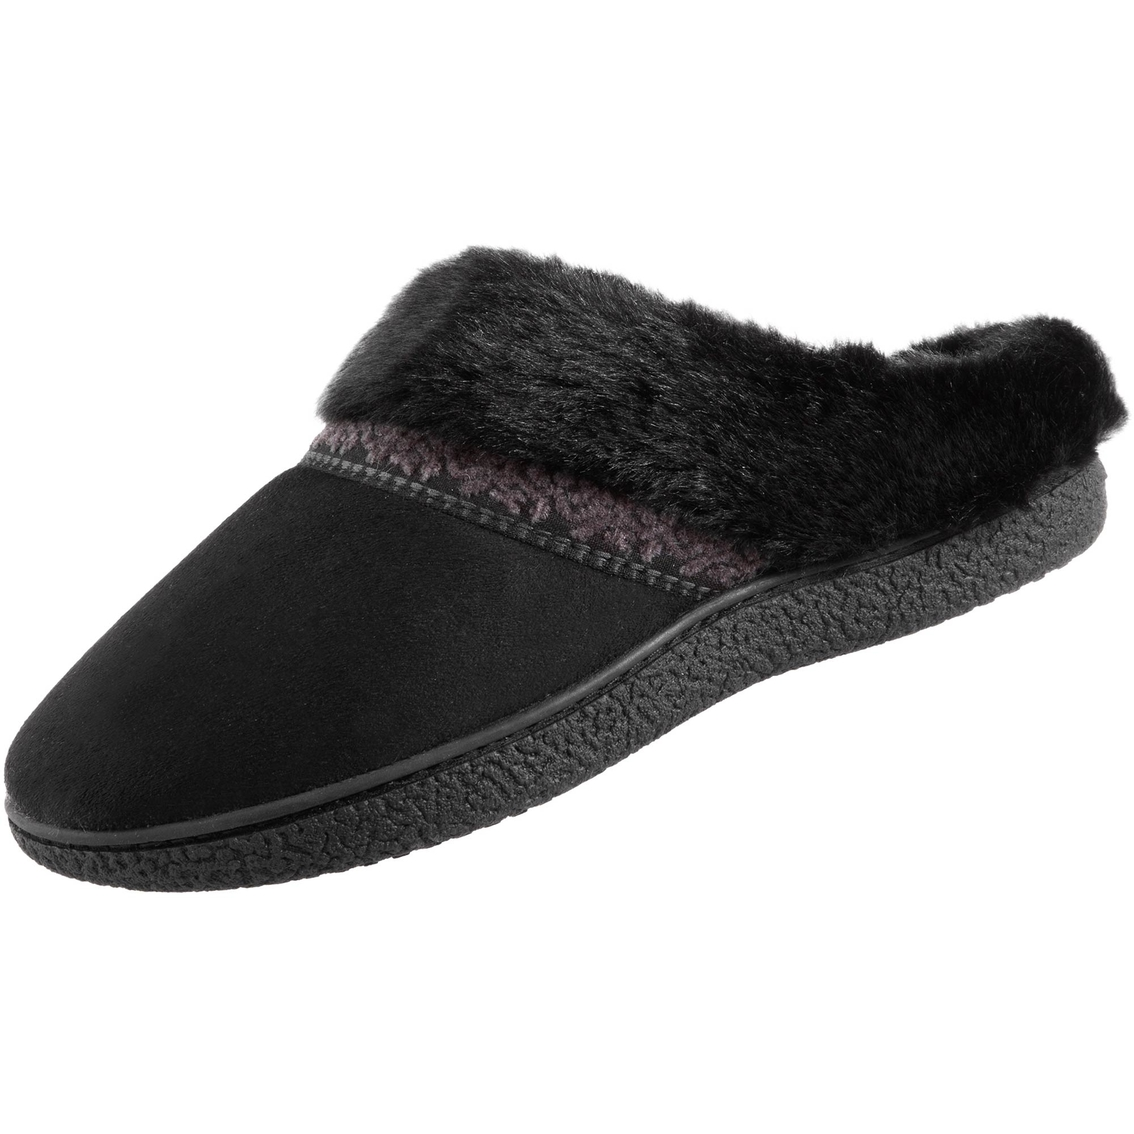 ebfd61a3a Isotoner Microsuede Basil Hoodback Slippers | Slippers | Shoes ...